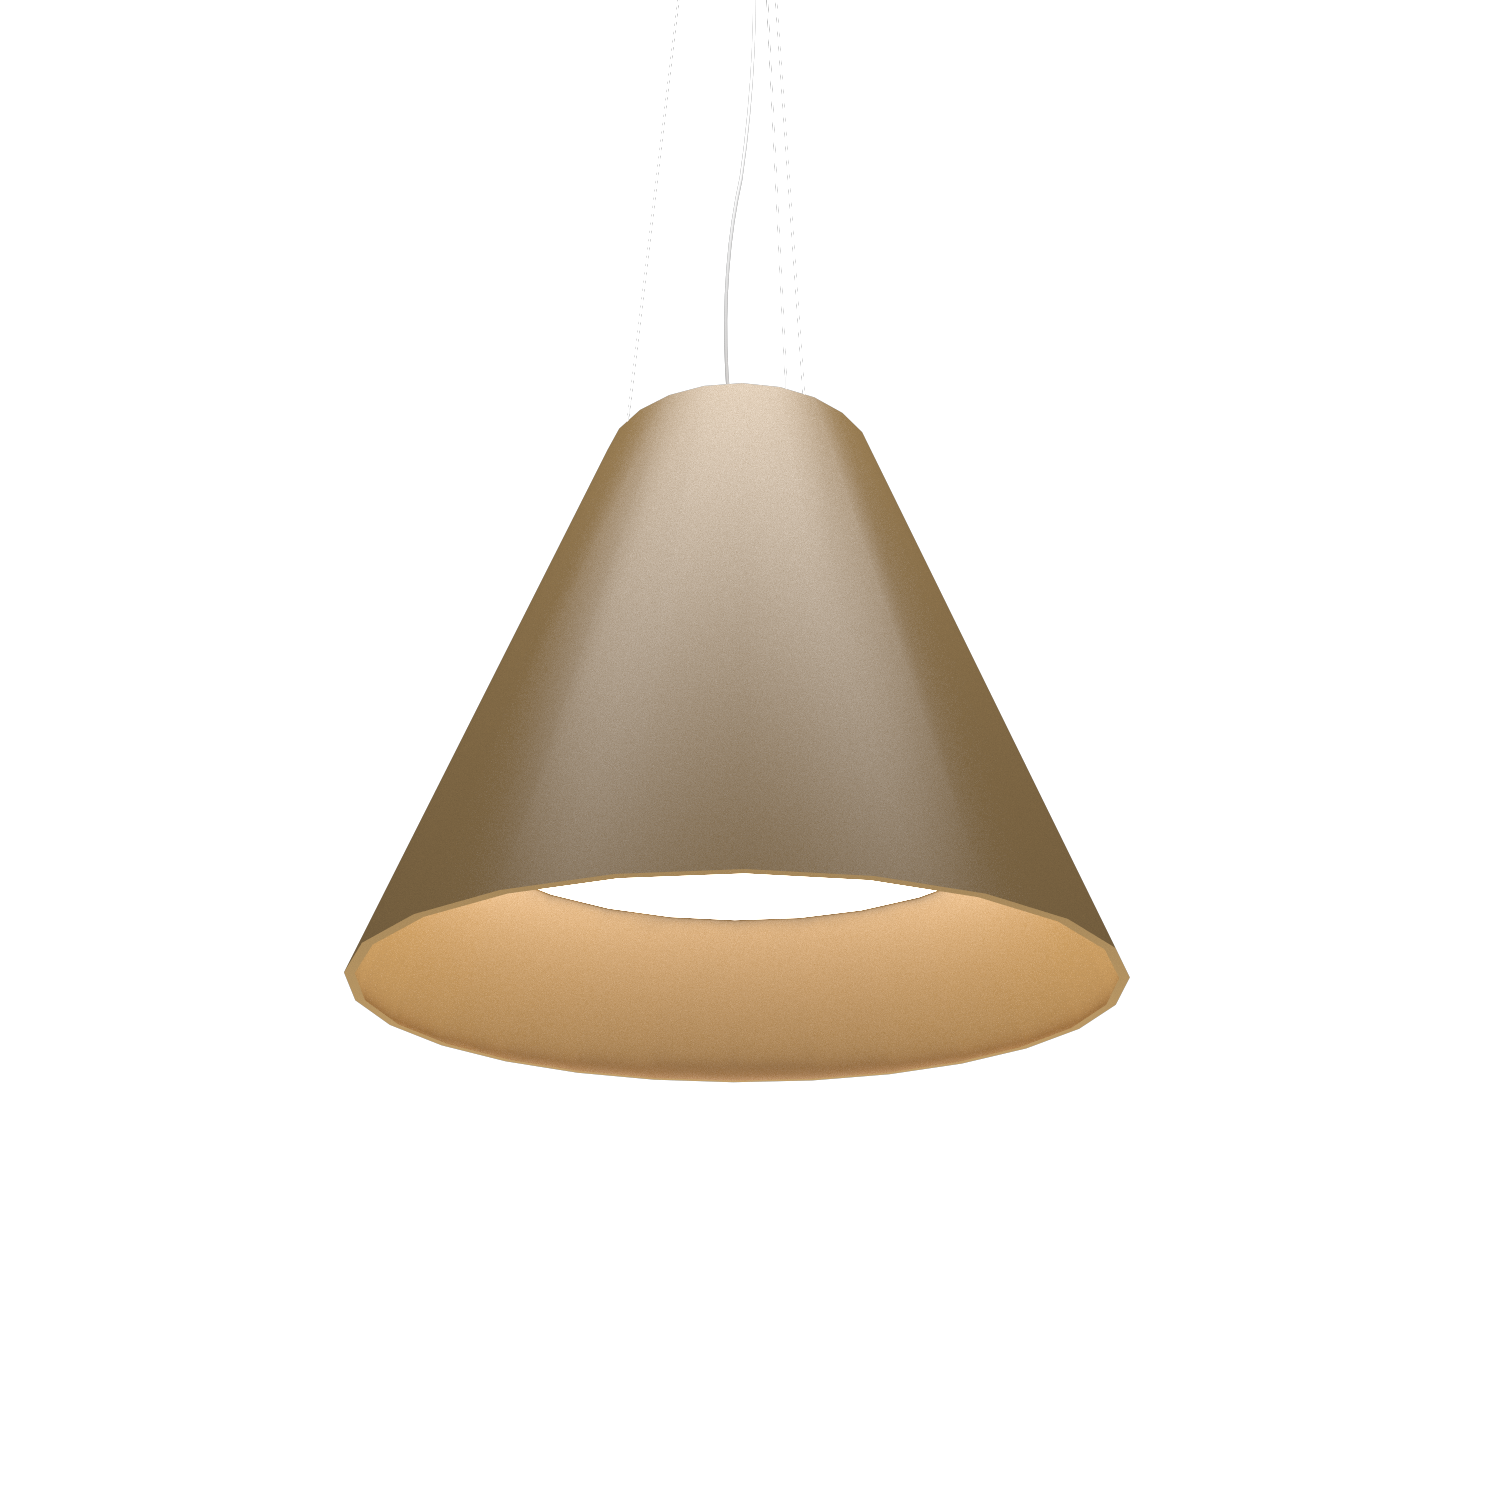 Pendant Lamp Accord Cônico 295 - Cônica Line Accord Lighting | 27. Gold